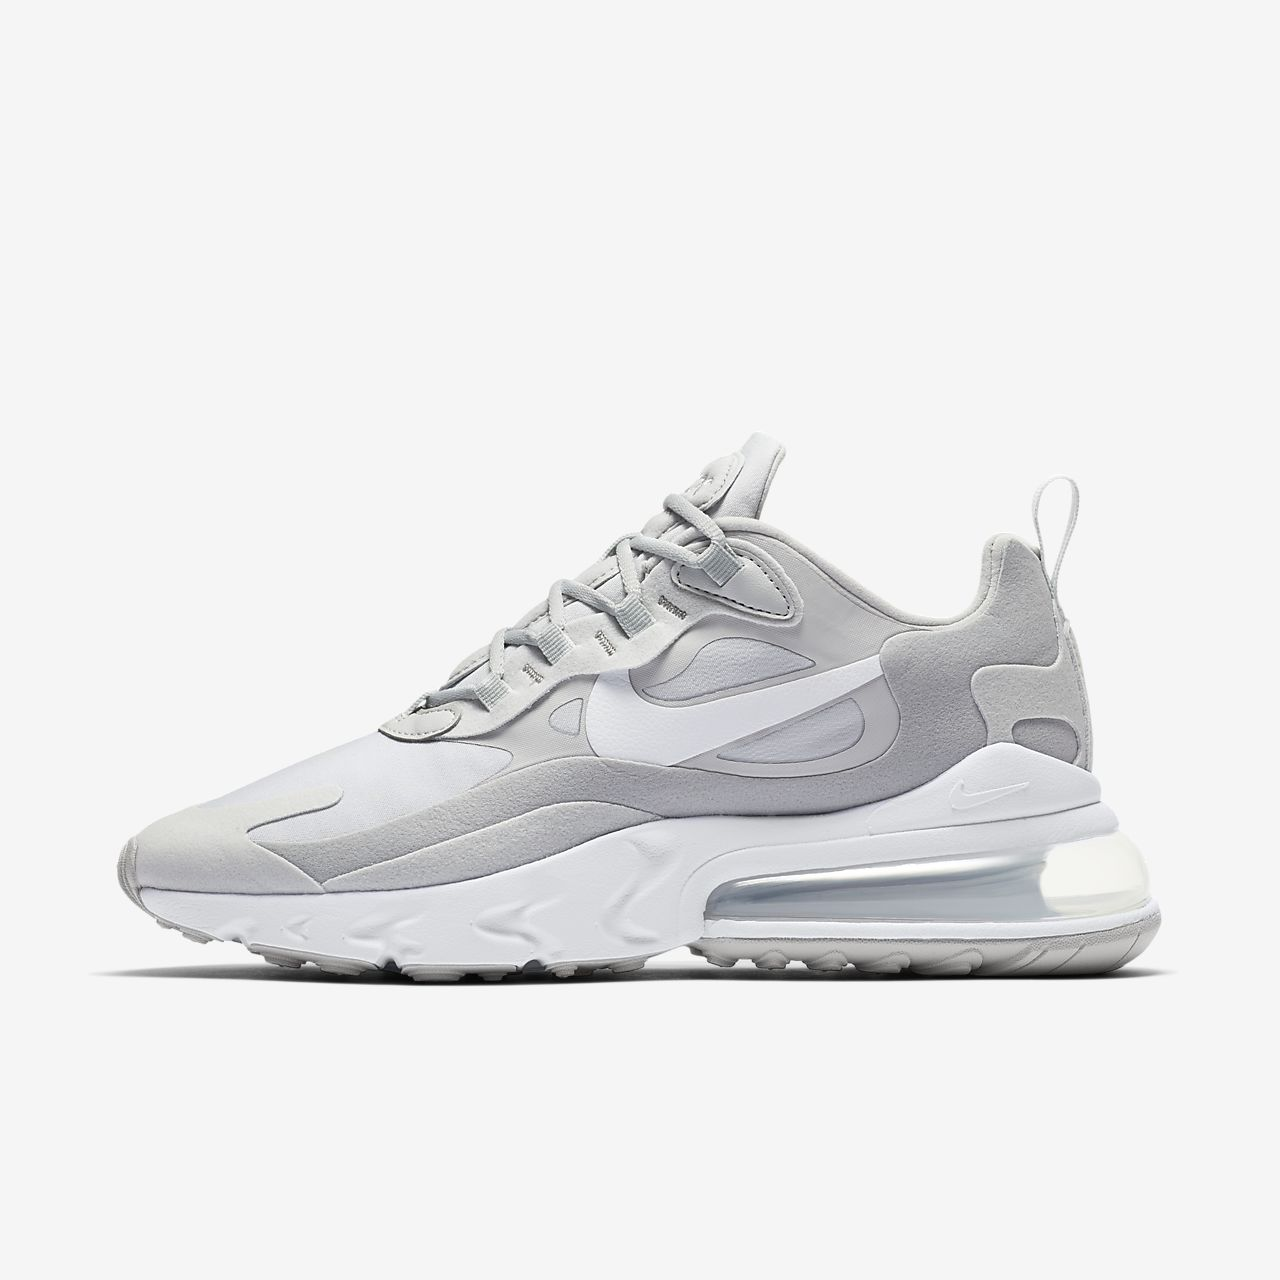 air max 270 react grey fog